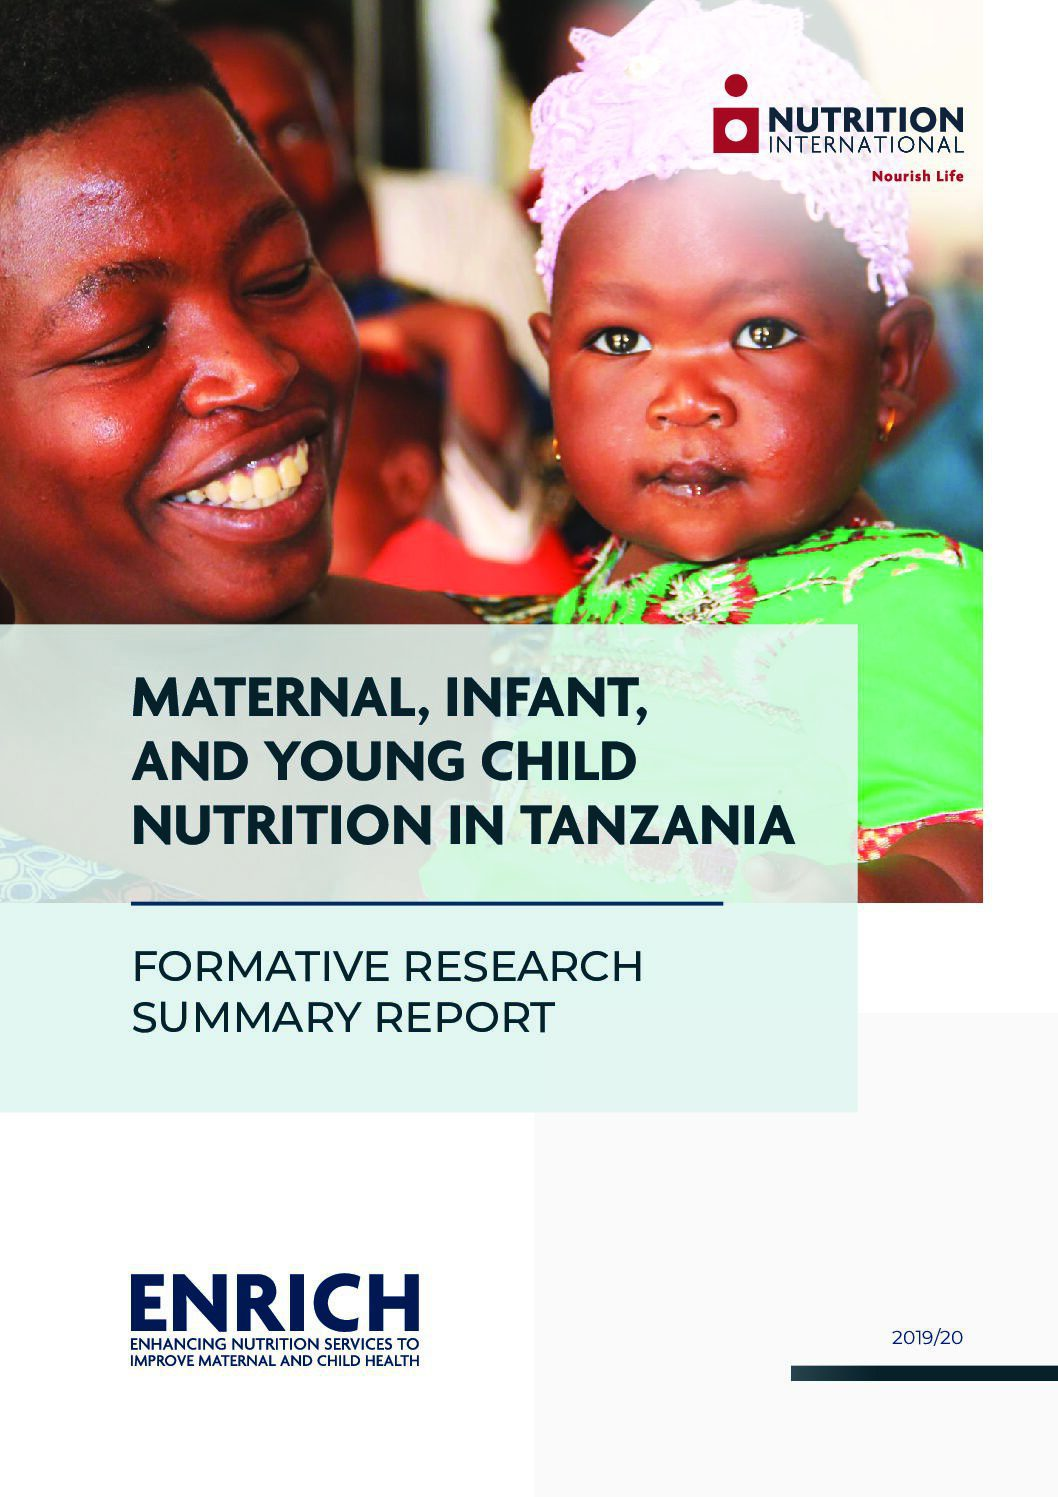 Maternal, Infant, and Young Child Nutrition in Tanzania: Formative research summary report thumbnail